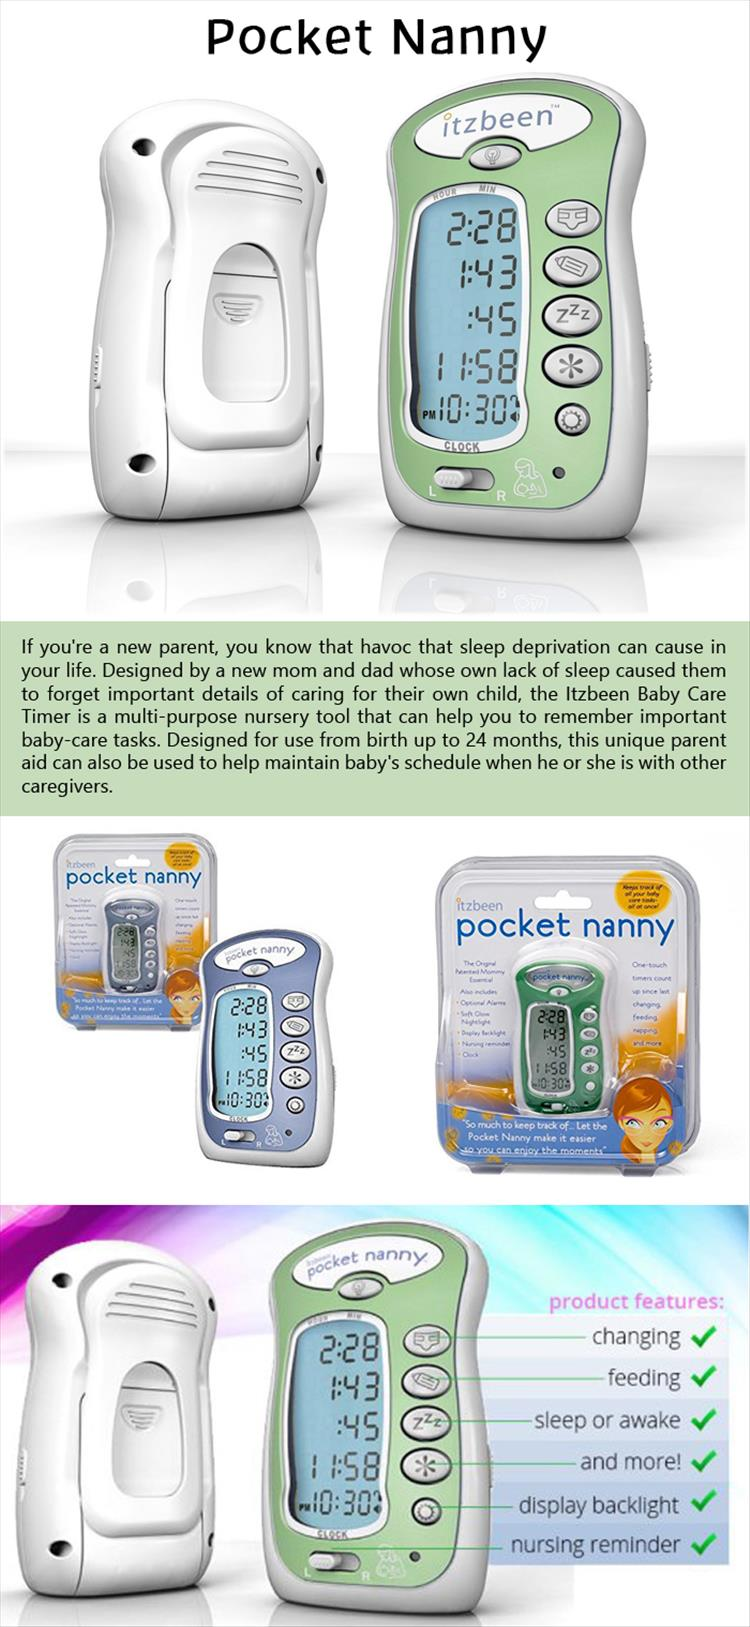 pocket-nanny